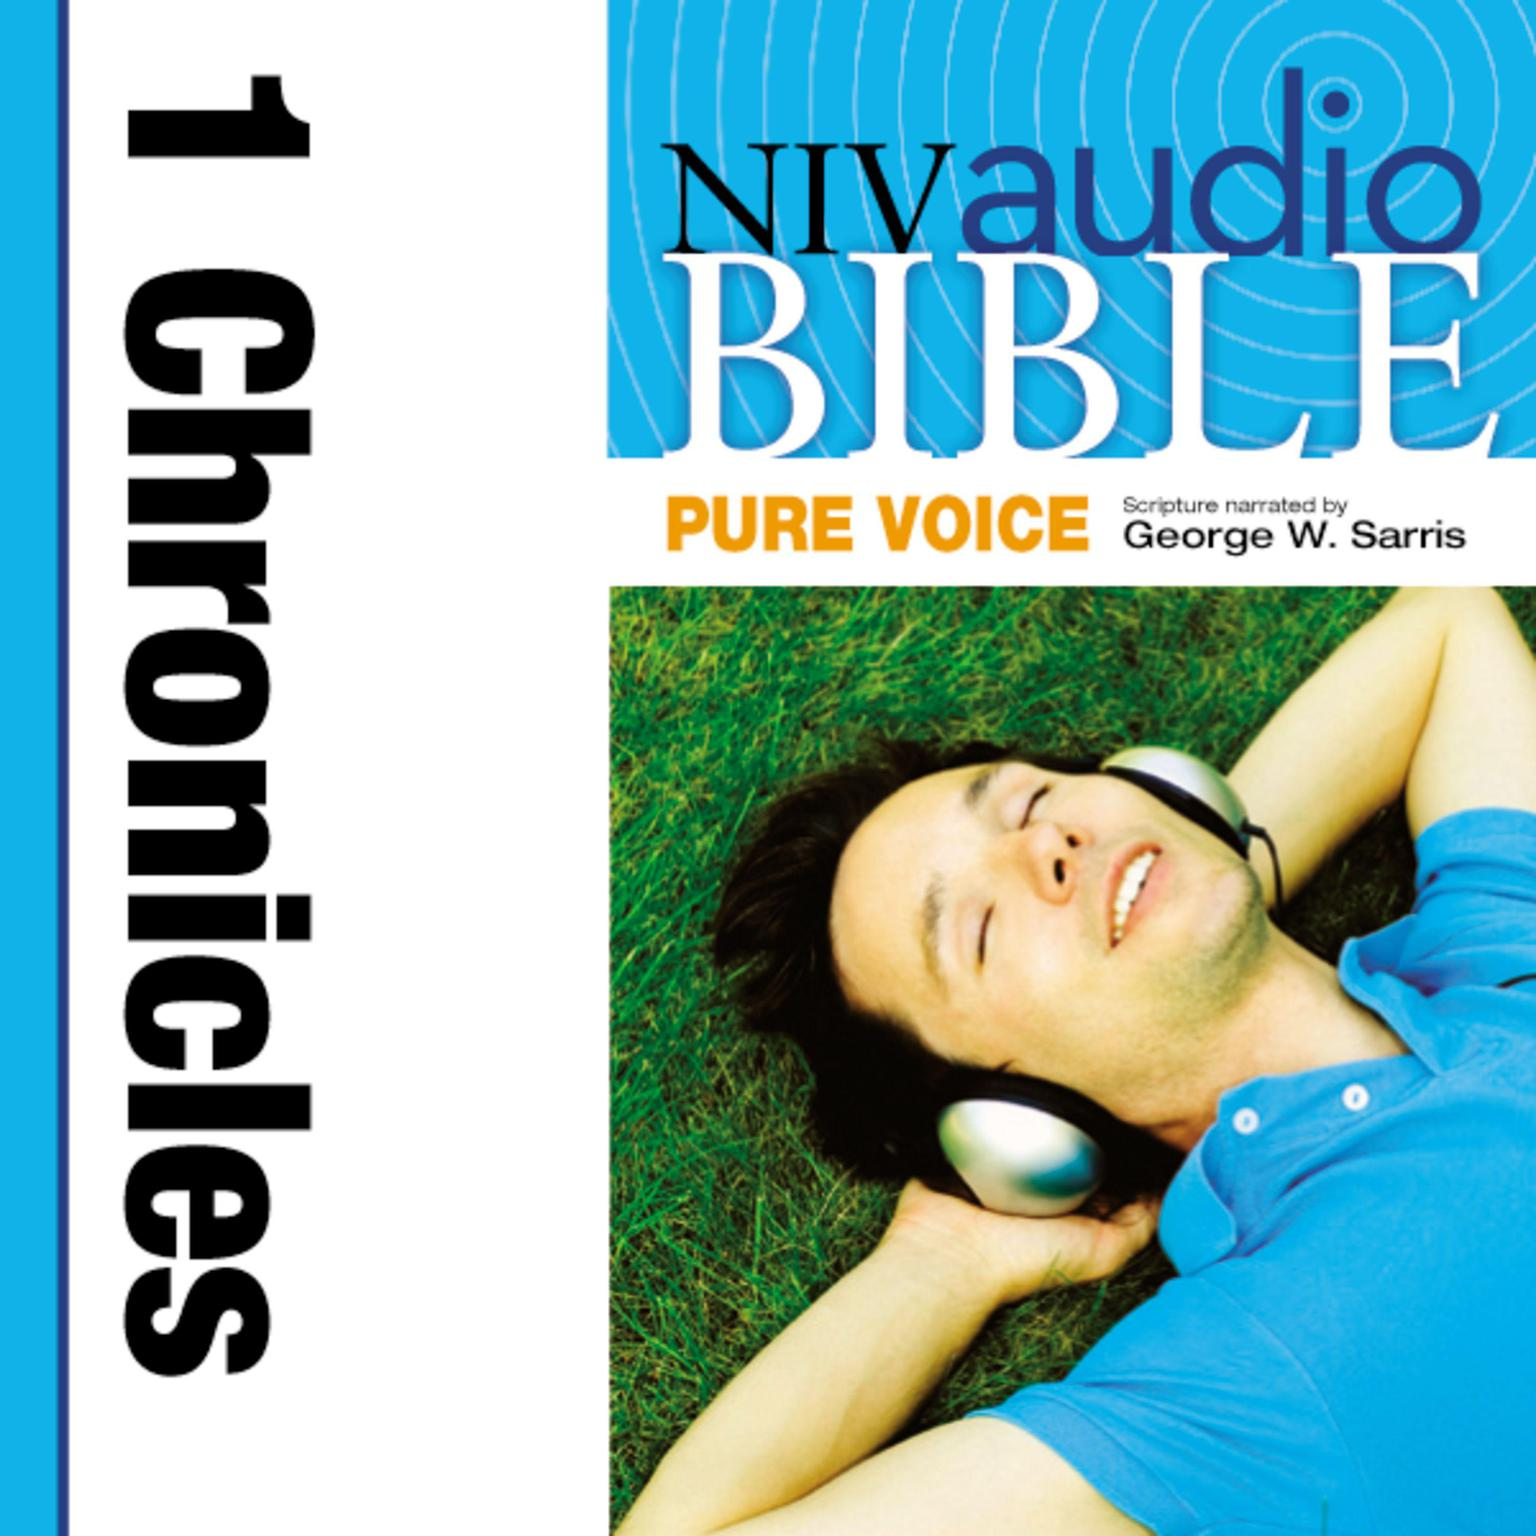 Printable NIV, Audio Bible, Pure Voice: 1 Chronicles, Audio Download (Narrated by George W. Sarris) Audiobook Cover Art